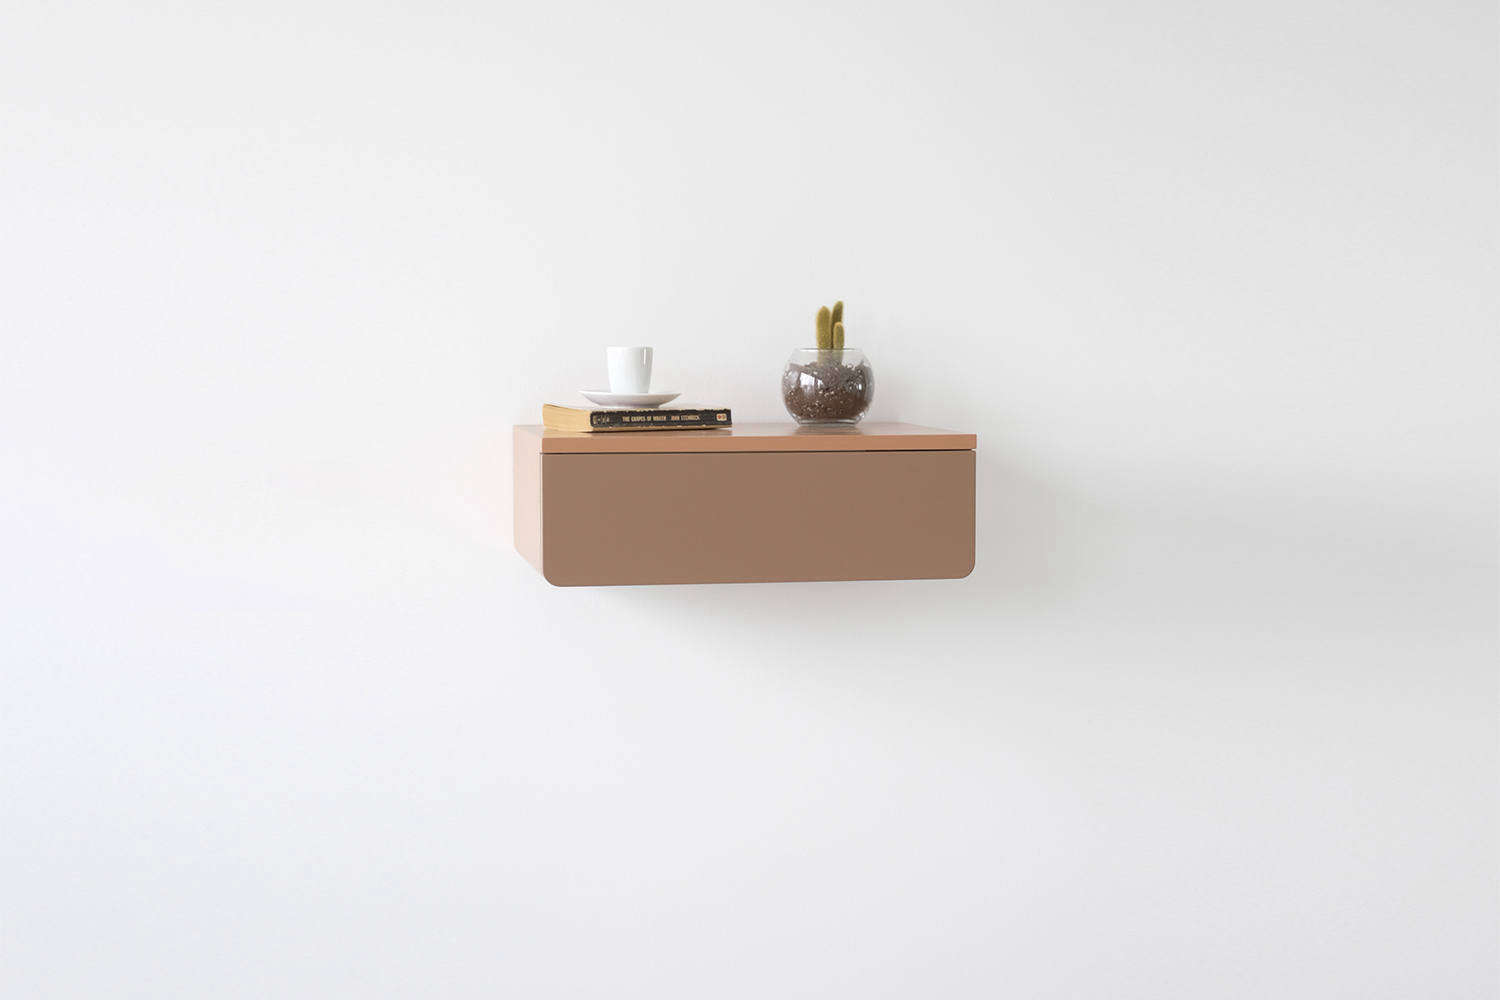 Wall-mounted Bedside Shelves With Drawers In Pretty Colors